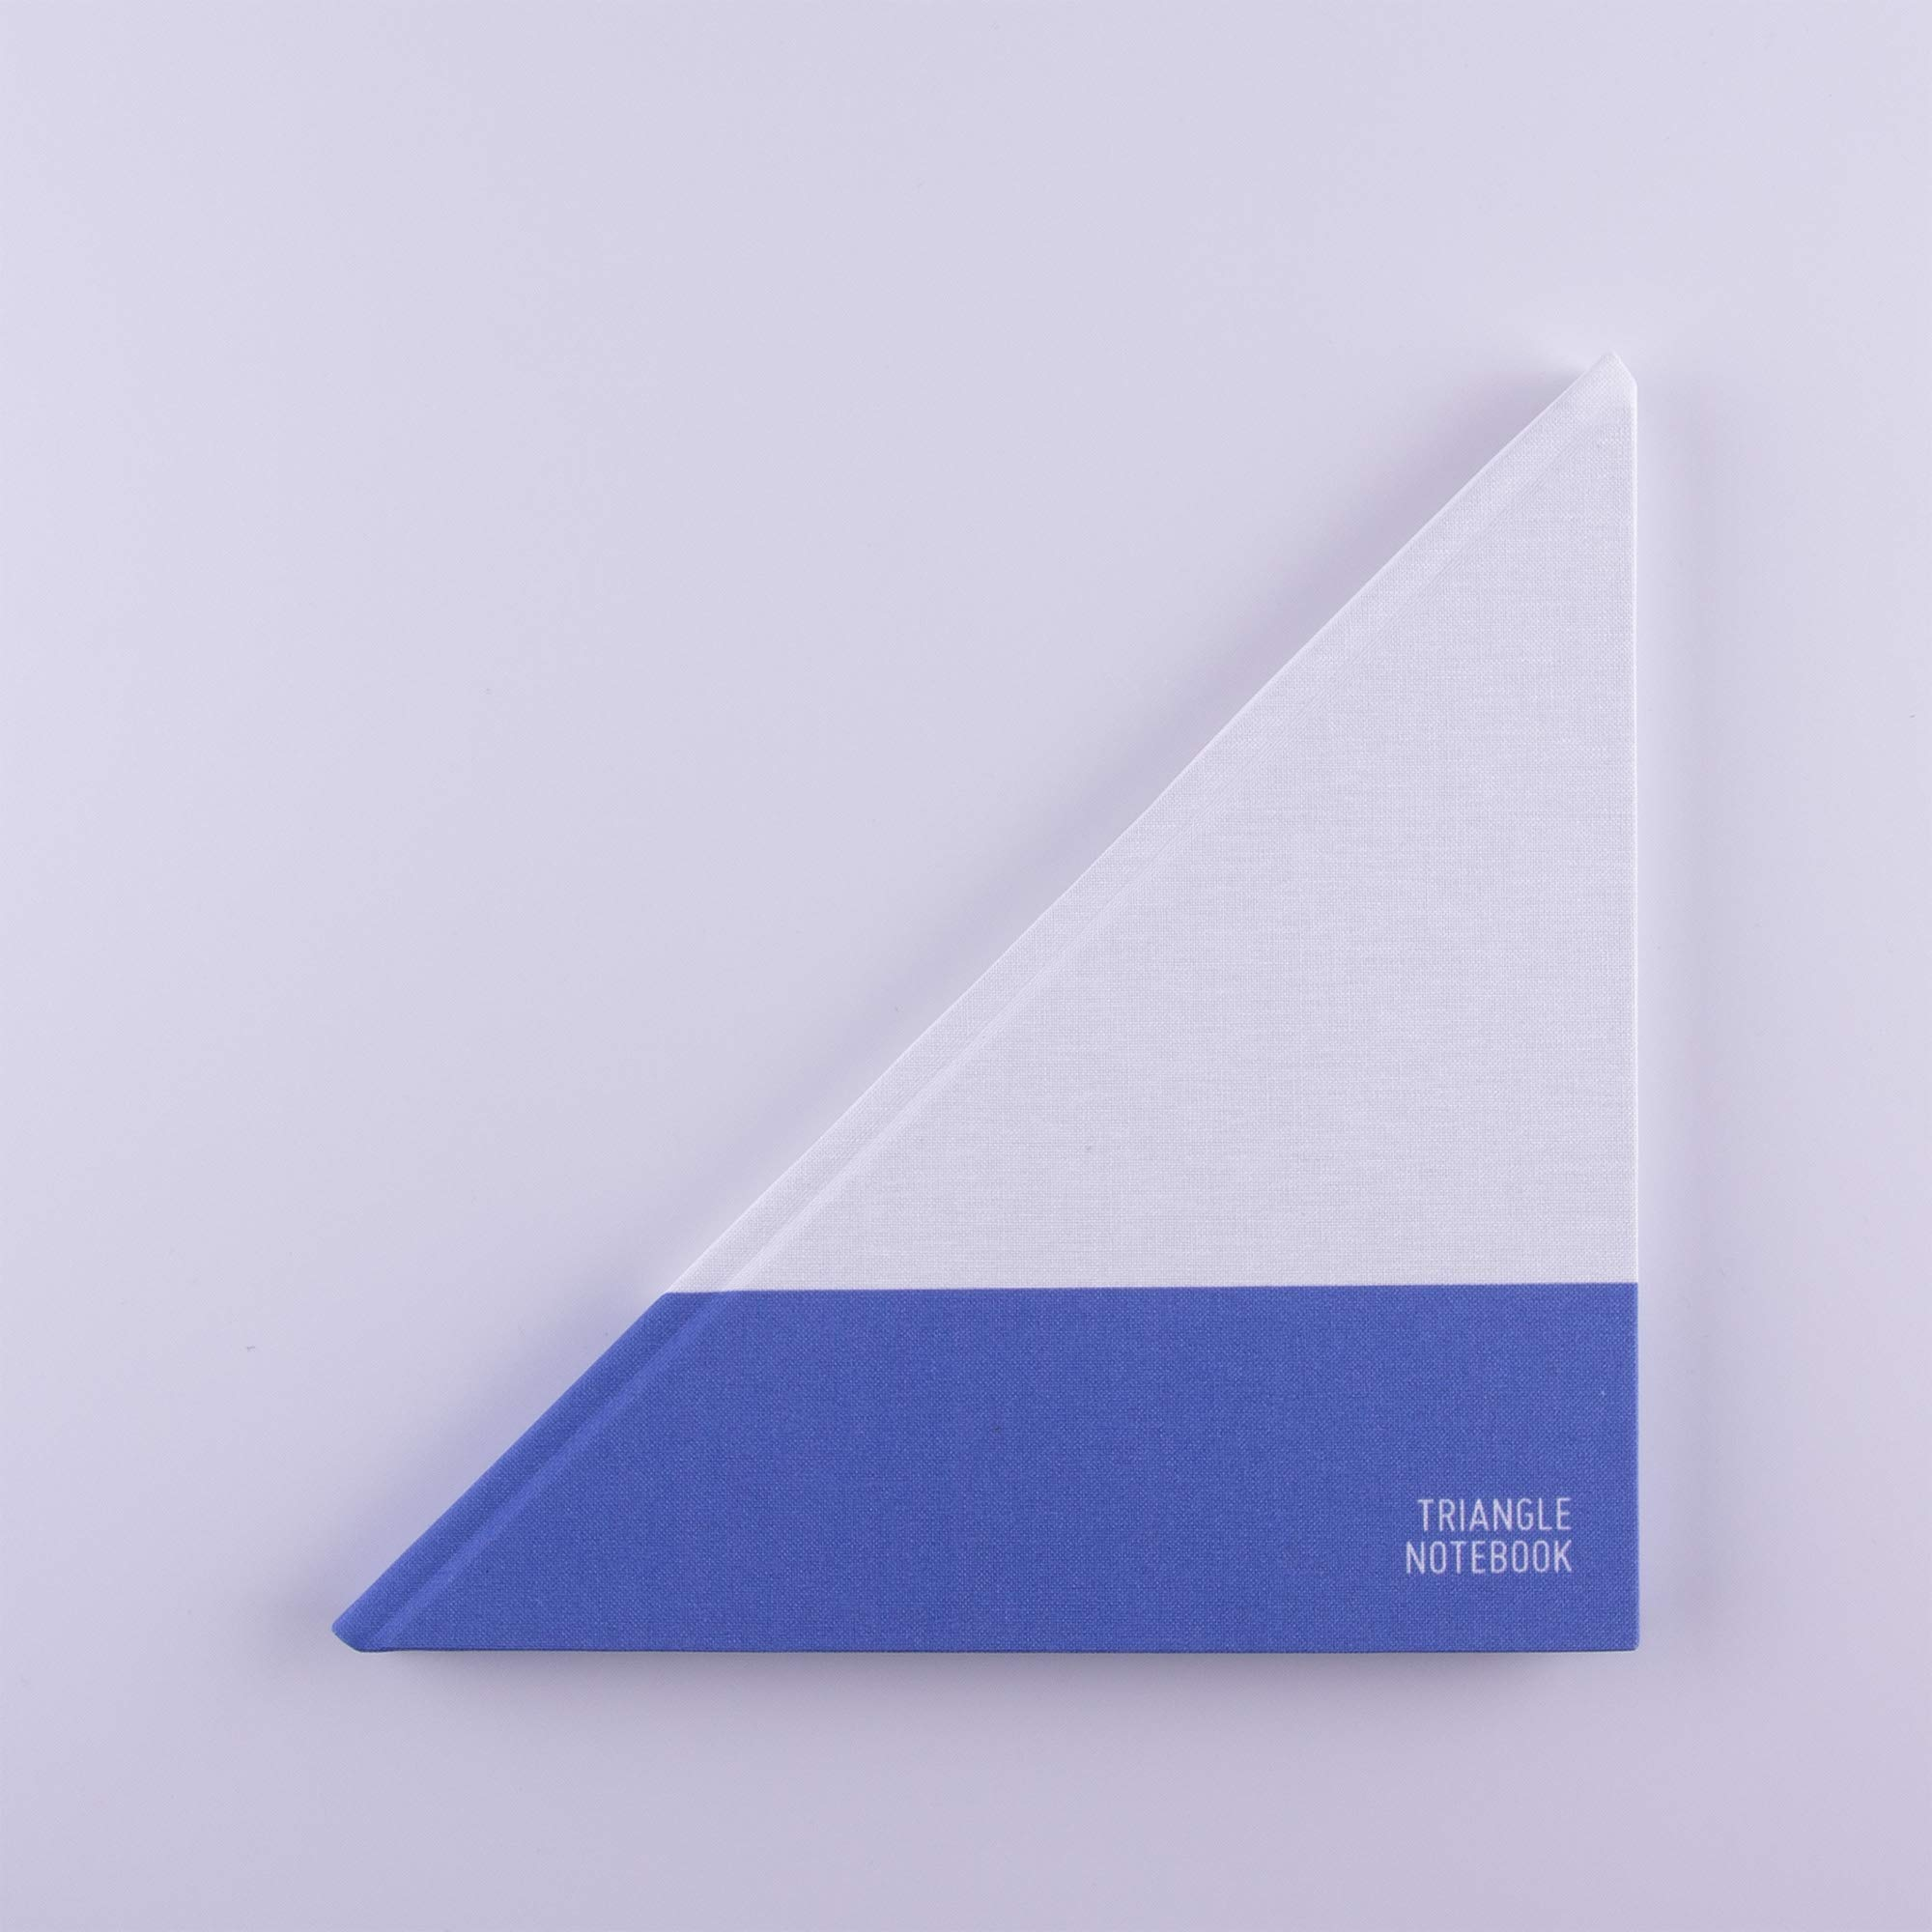 Triangle Notebook - Fabric Hardcover Notebook - Unique Design (Yachtsman Edition - Blue) by Triangle Notebook